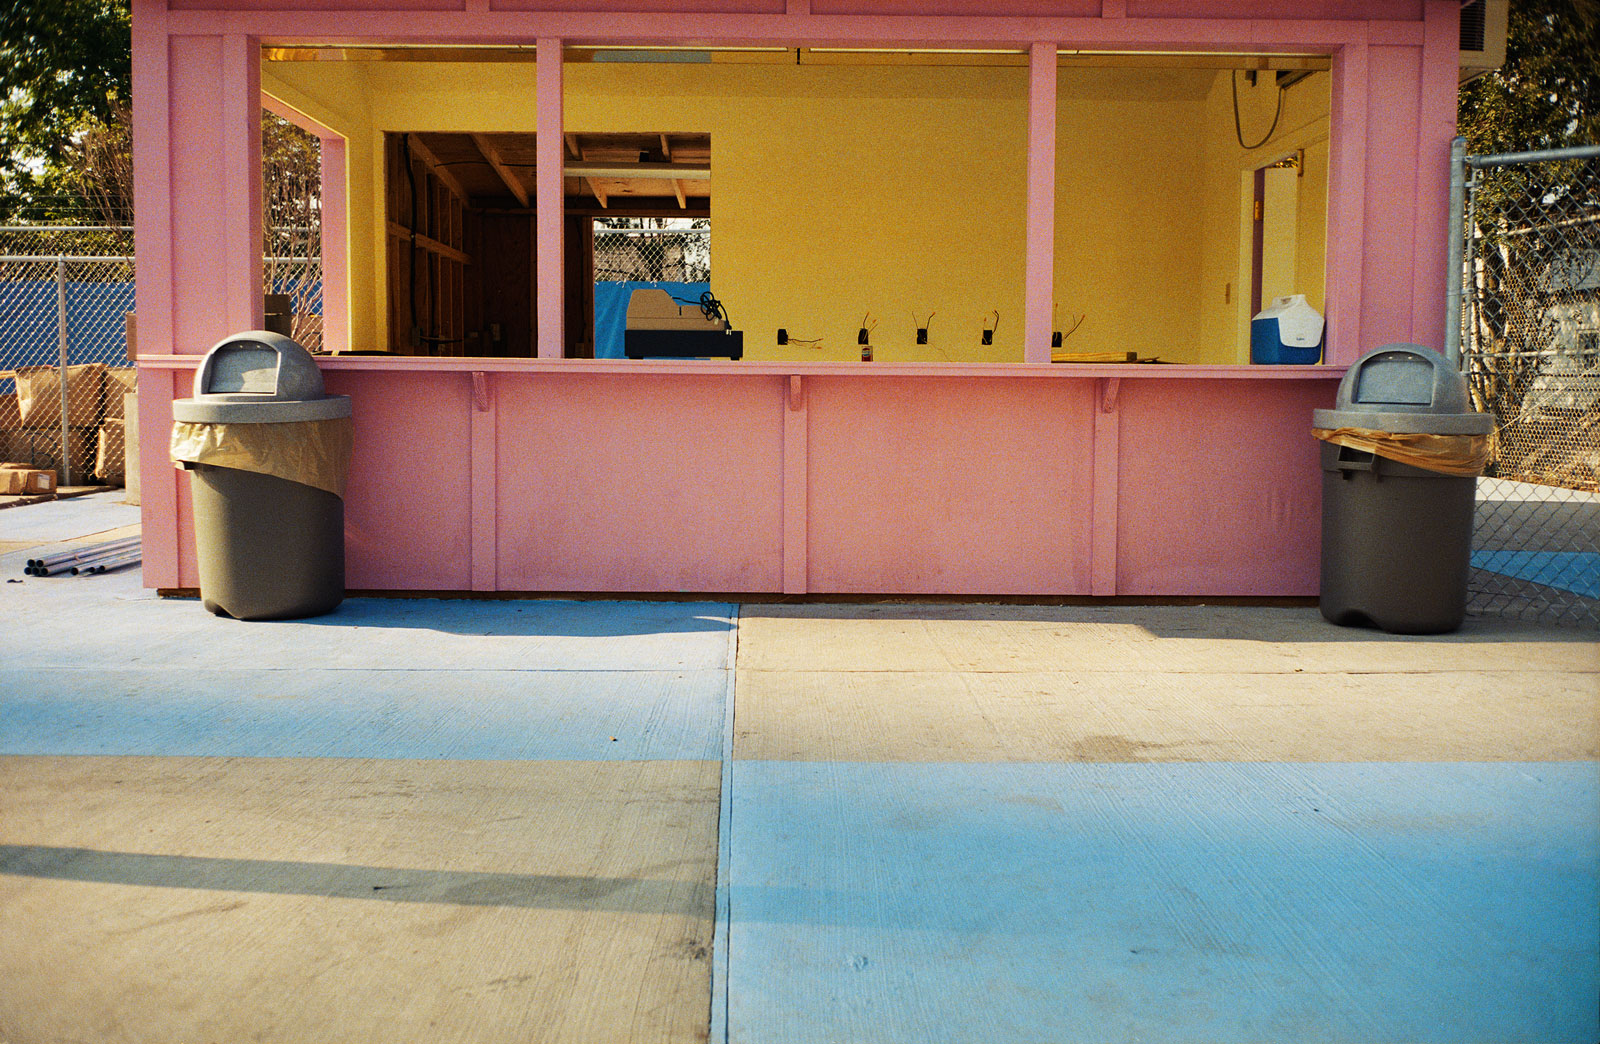 eggleston-concession